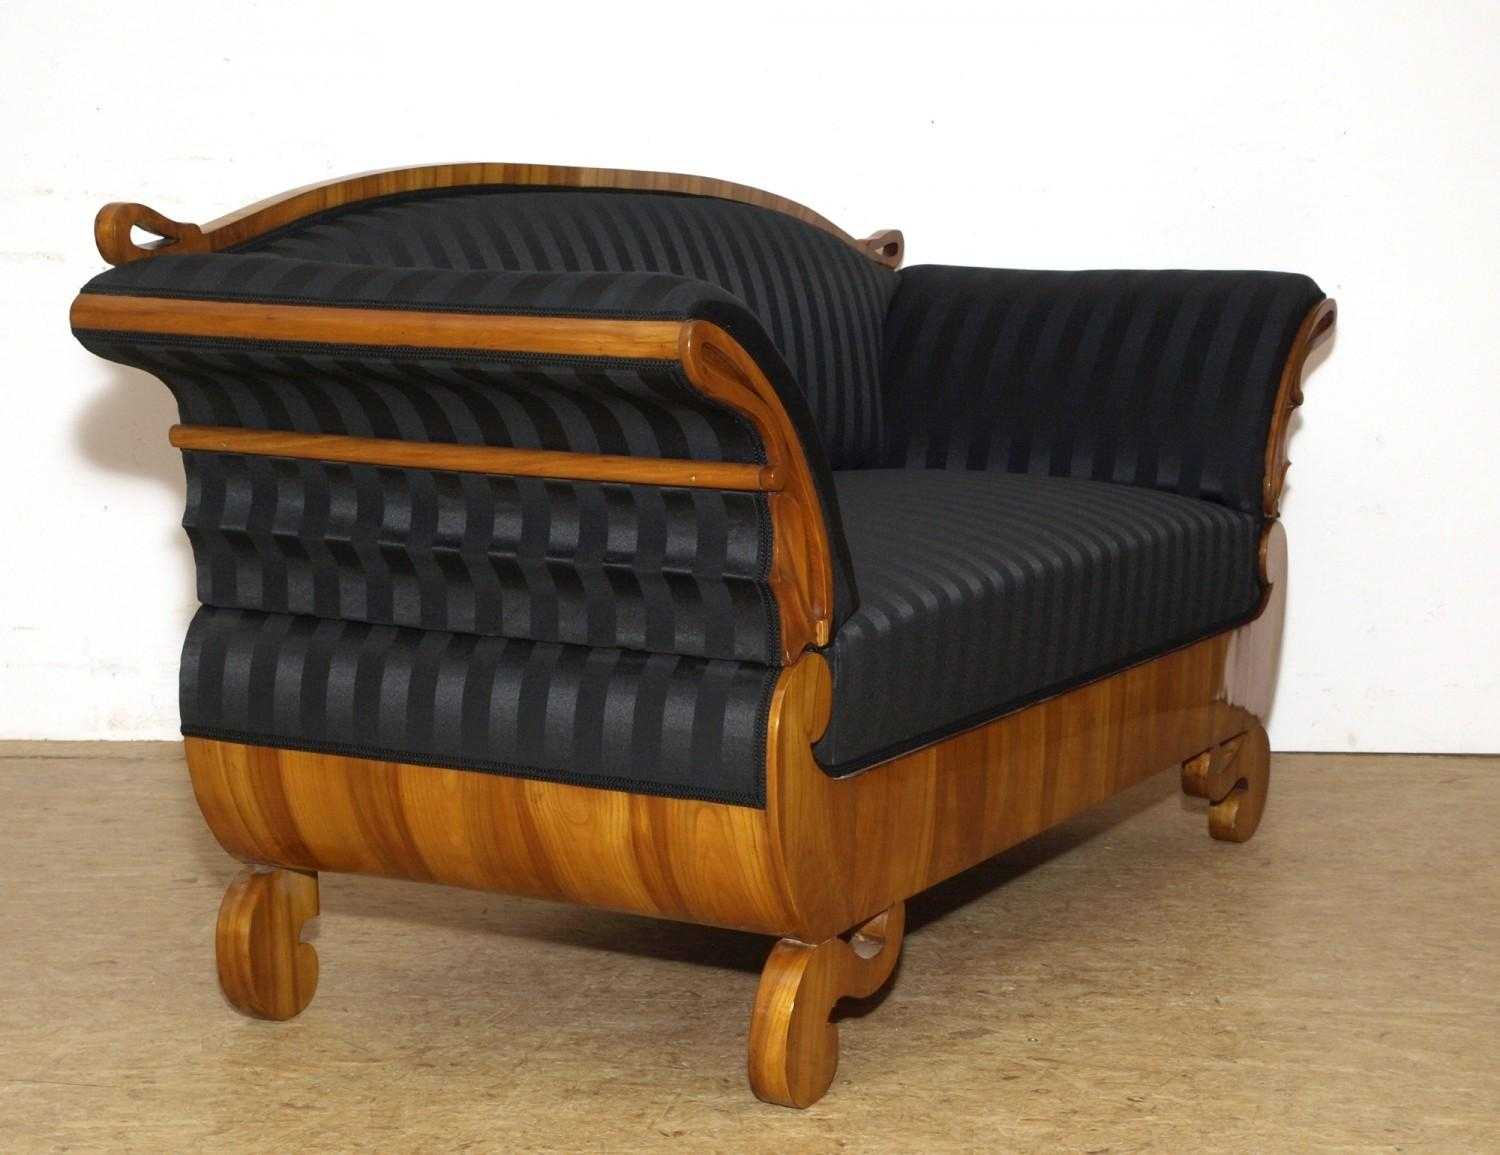 Elegantes Biedermeier Sofa Aus Kirschbaum – Furthof For Biedermeier Sofas (Image 15 of 20)